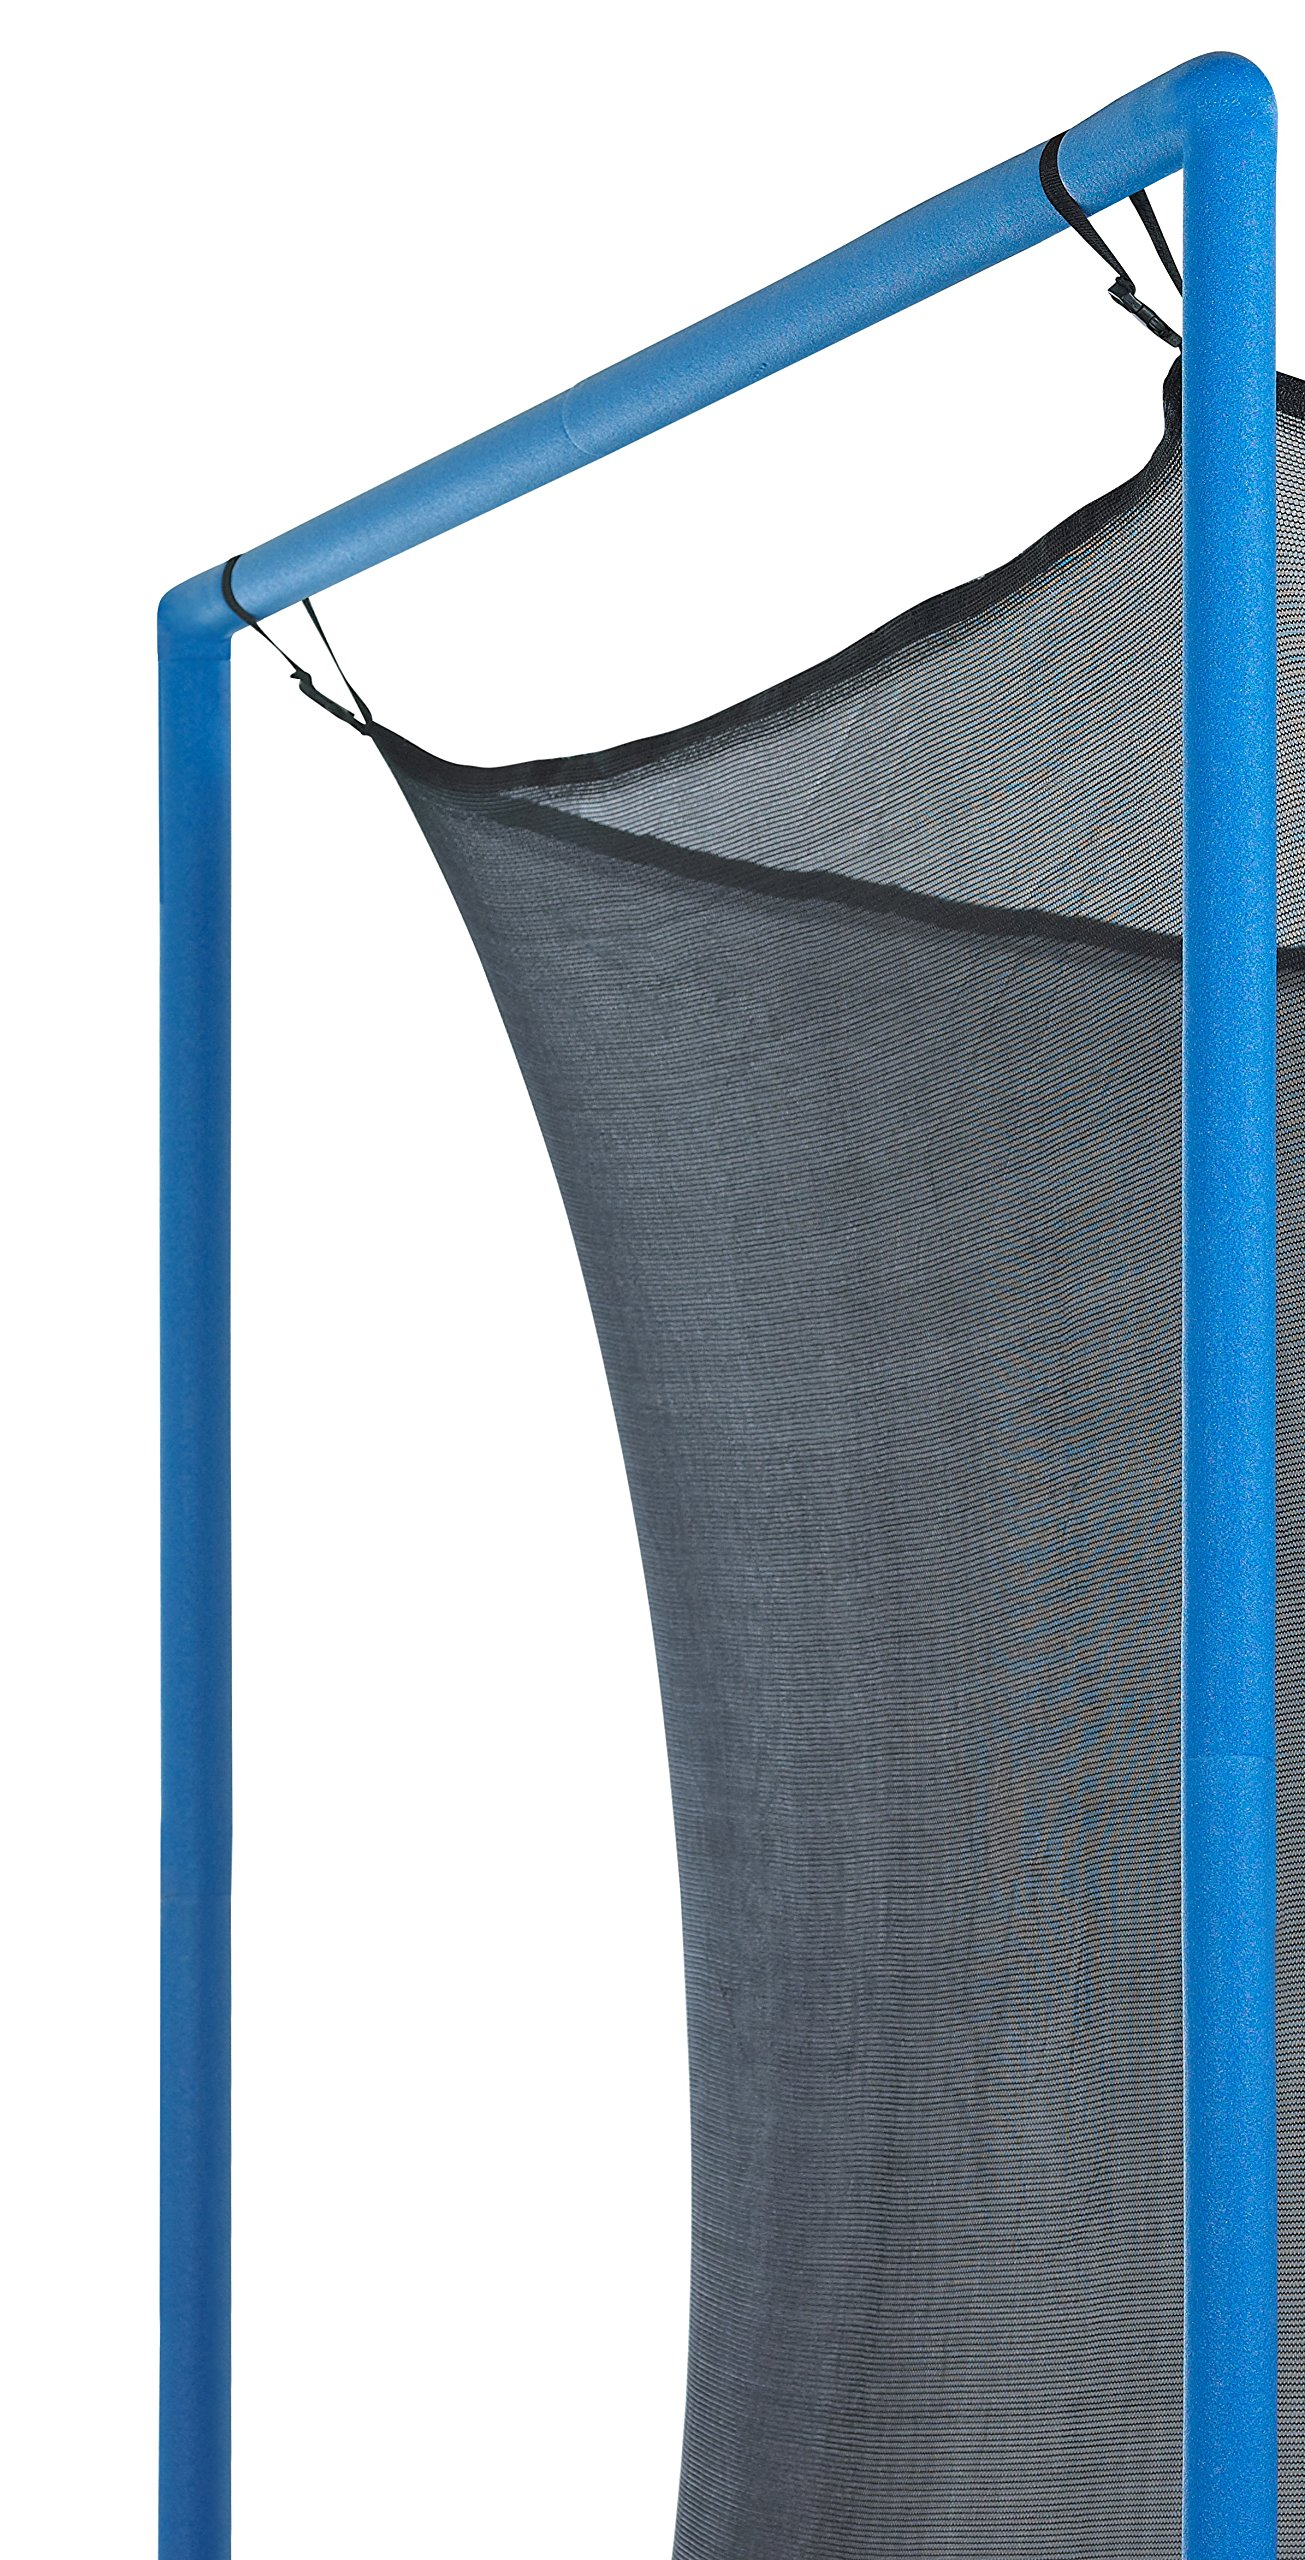 Upper Bounce Replacement 15' Trampoline Enclosure Safety Netting Fence Fits 15 FT Round Frames Using 6 Poles or 3 Arches (poles not included) by Upper Bounce (Image #4)